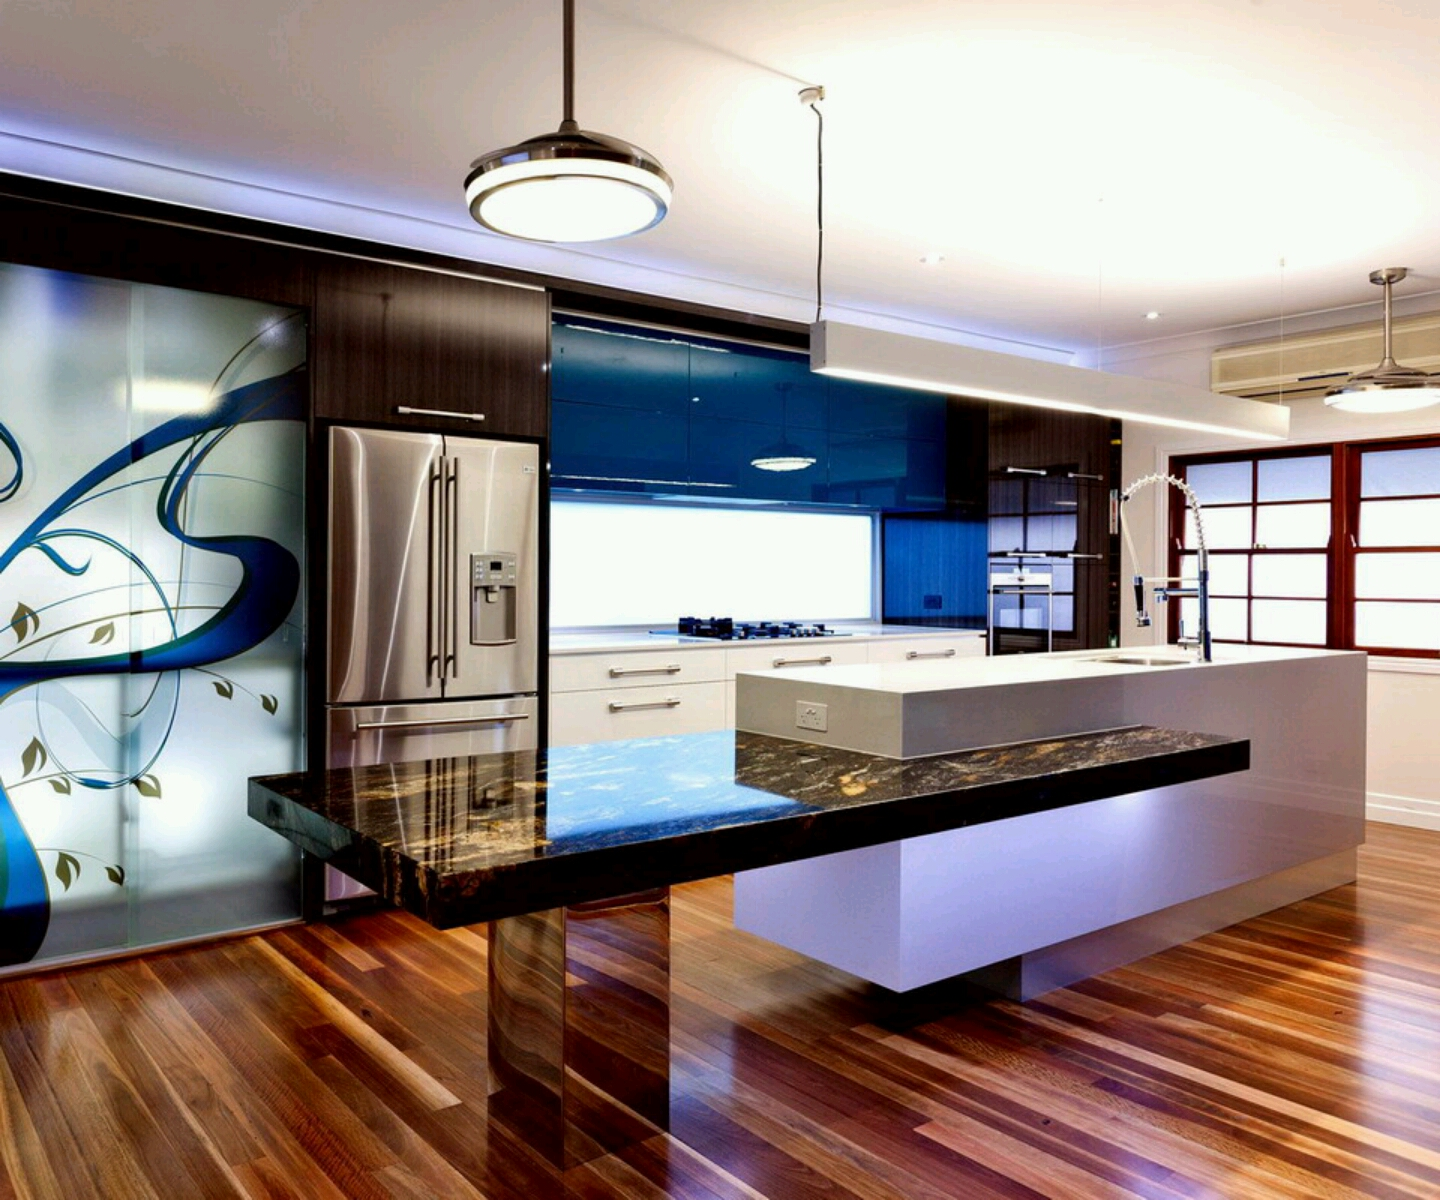 New home designs latest ultra modern kitchen designs ideas Modern home design ideas